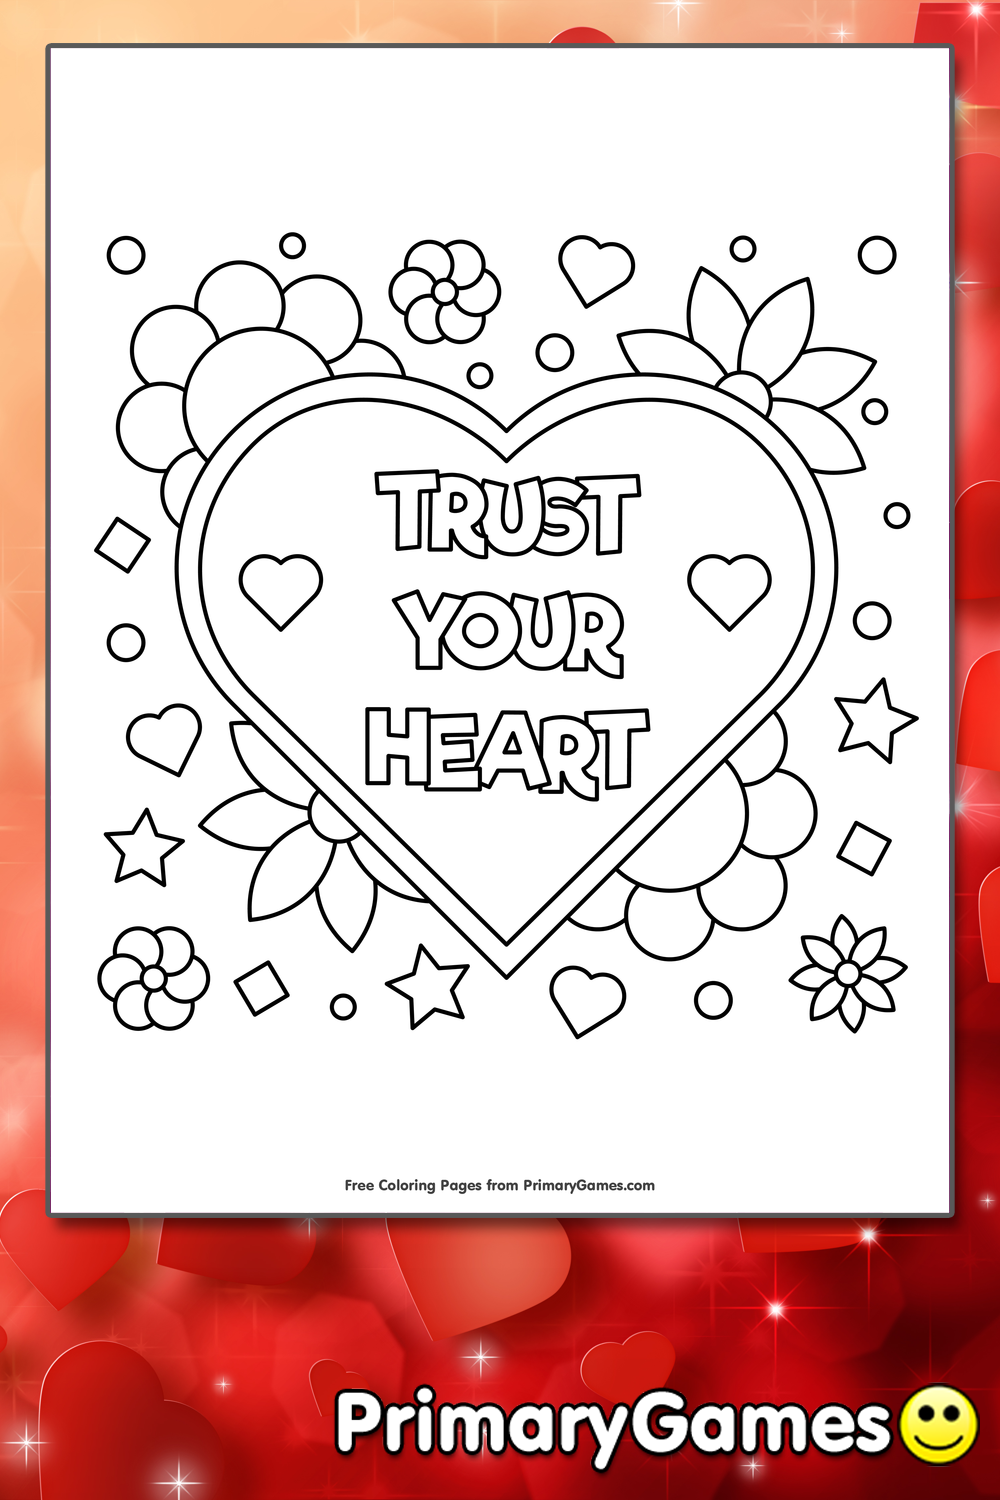 Trust Your Heart Coloring Page • FREE Printable PDF from PrimaryGames